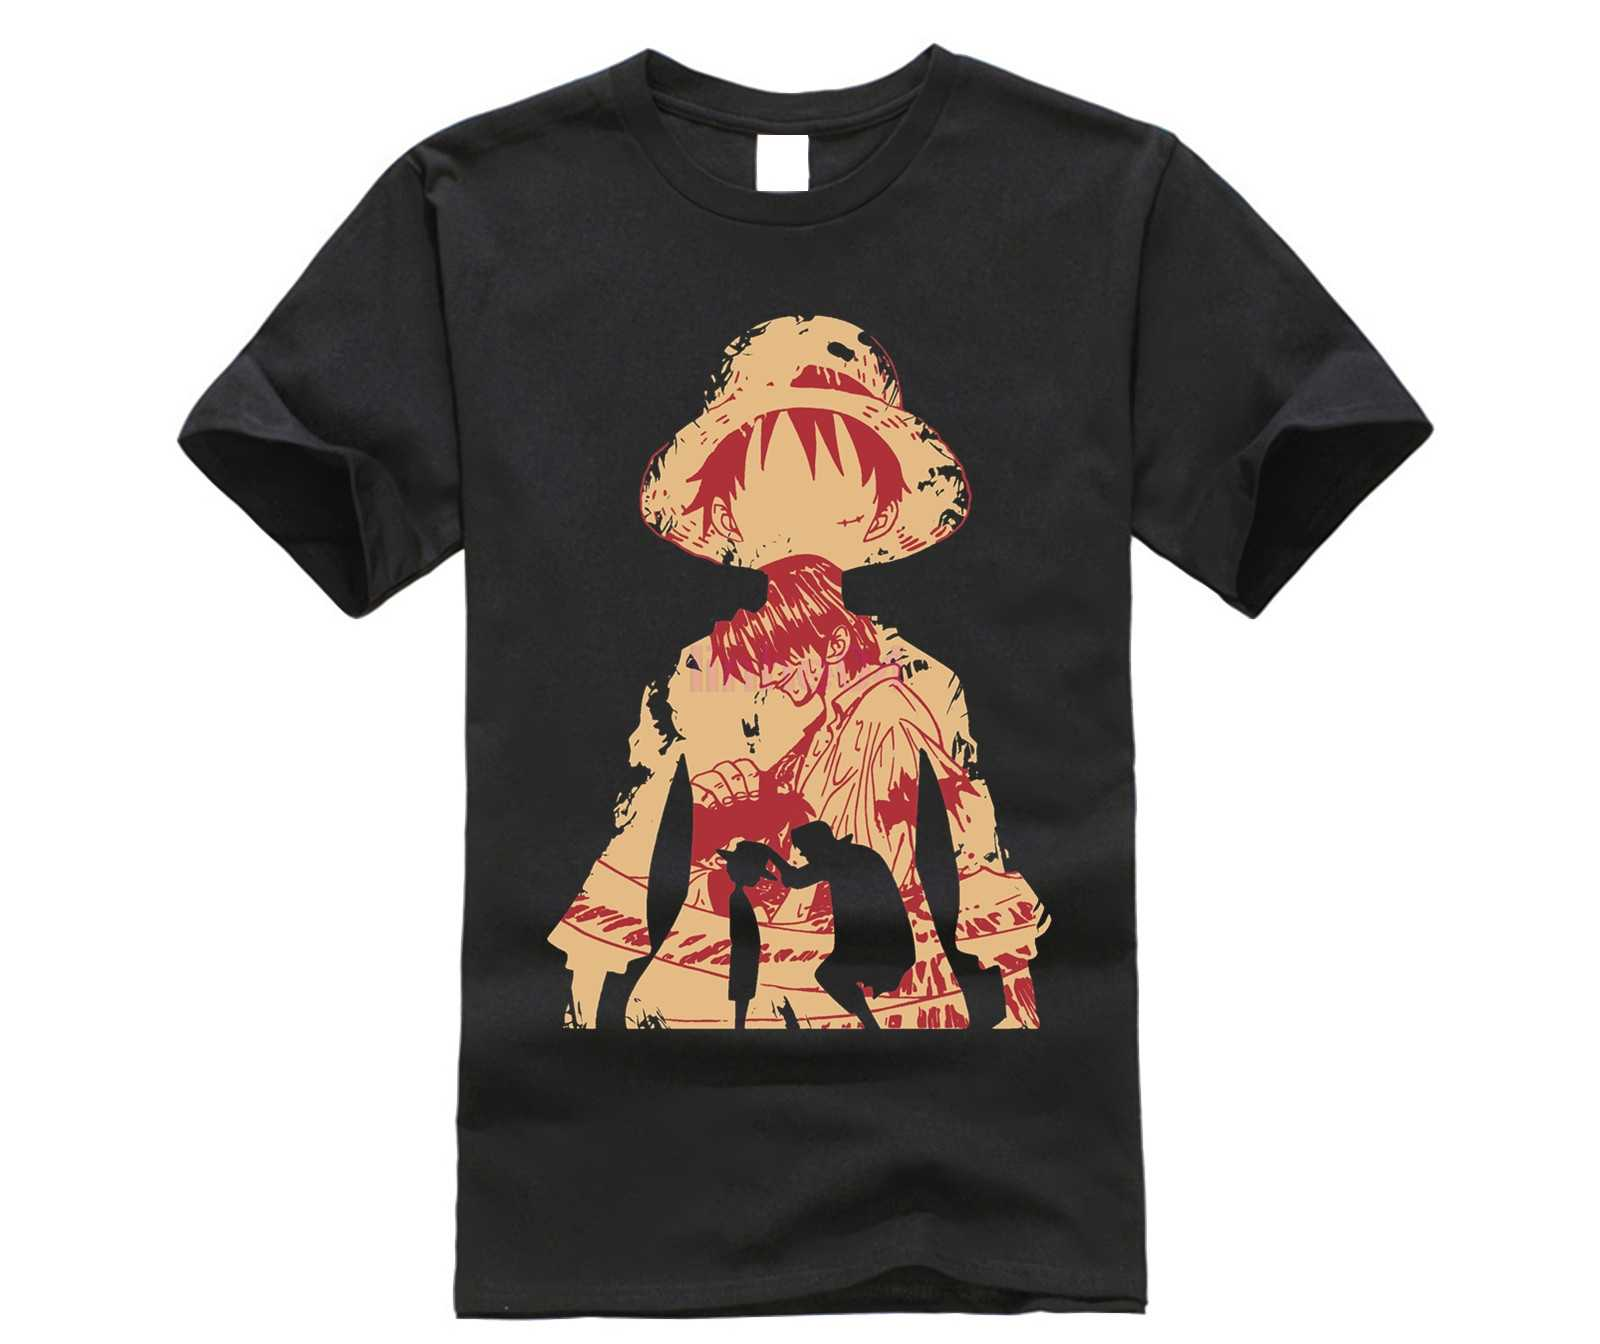 b3e4df6e7 Detail Feedback Questions about Luffy and Shanks One Piece T Shirt on  Aliexpress.com | alibaba group